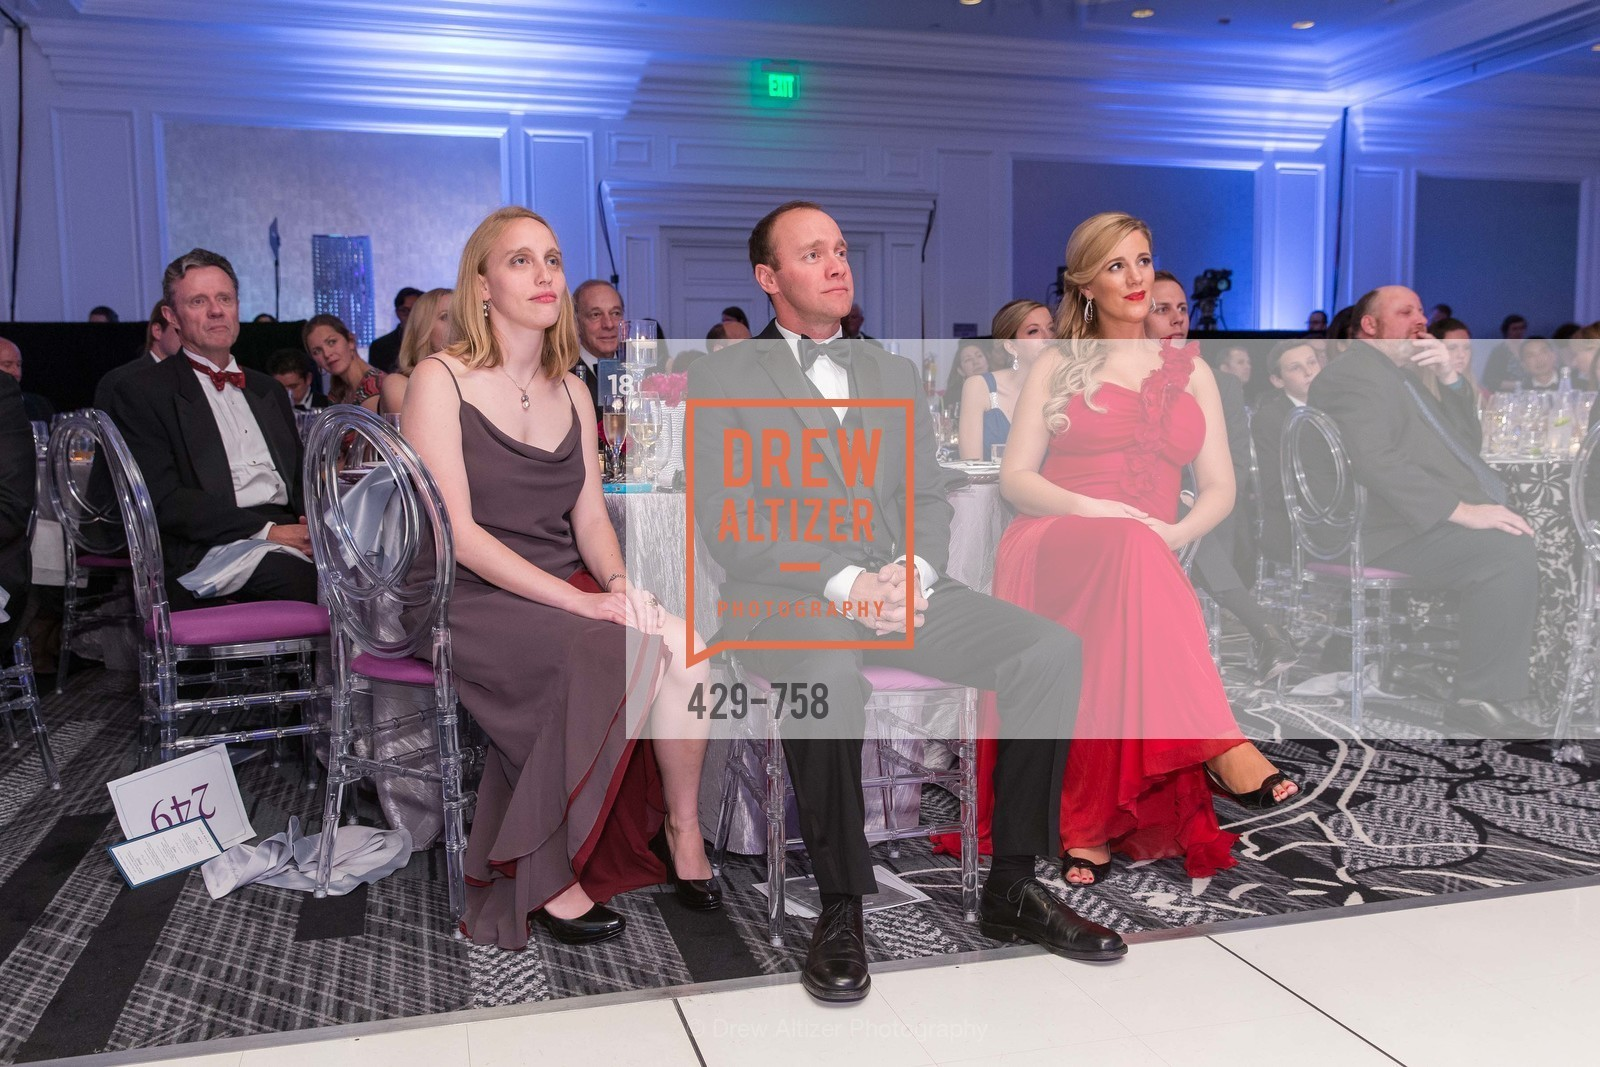 Piper Sagan, Trevor Sagan, Lauren Sagan, JUVENILE DIABETES RESEARCH FOUNDATION  Hope Gala, US, May 30th, 2015,Drew Altizer, Drew Altizer Photography, full-service agency, private events, San Francisco photographer, photographer california